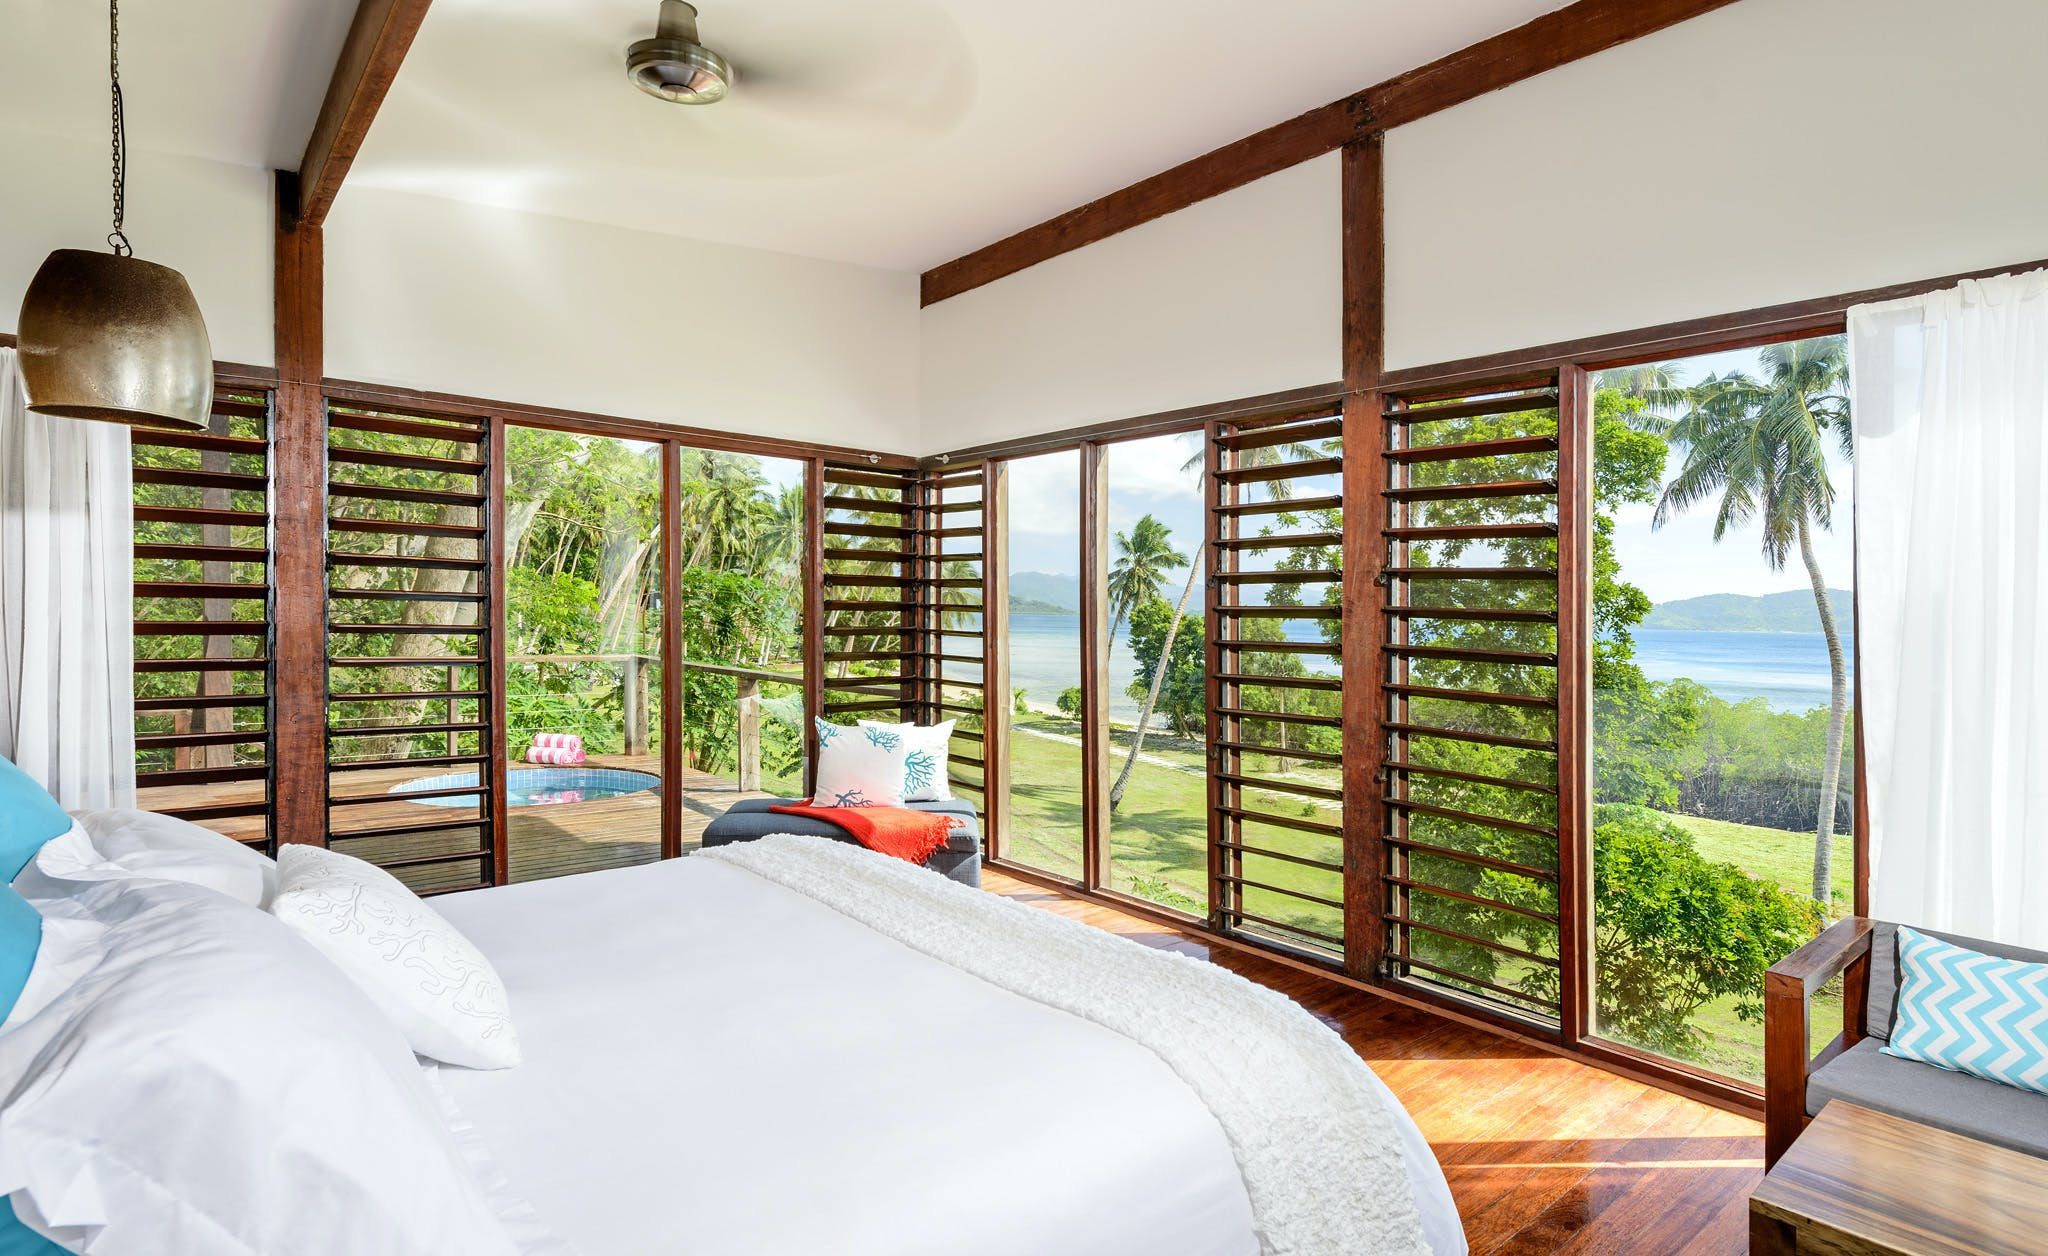 Bedroom of an Oceanfront at The Remote Resort Fiji Islands featuring floor to ceiling screened louvers and glass